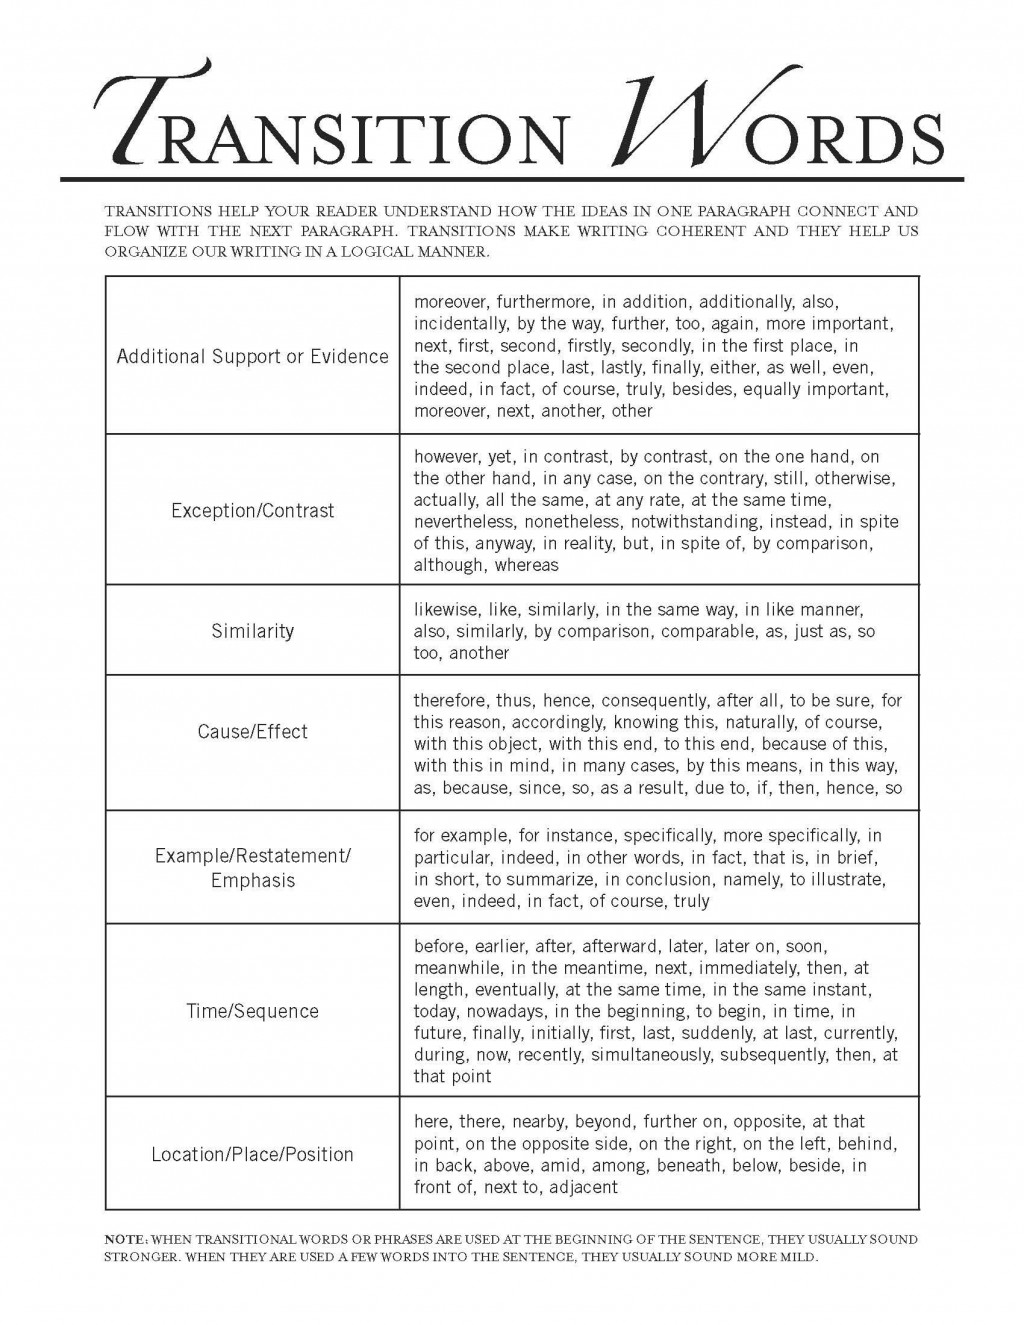 001 Transition Words And Phrases For Essays Essay Amazing Opinion Writing Narrative 5th Grade Expository Large